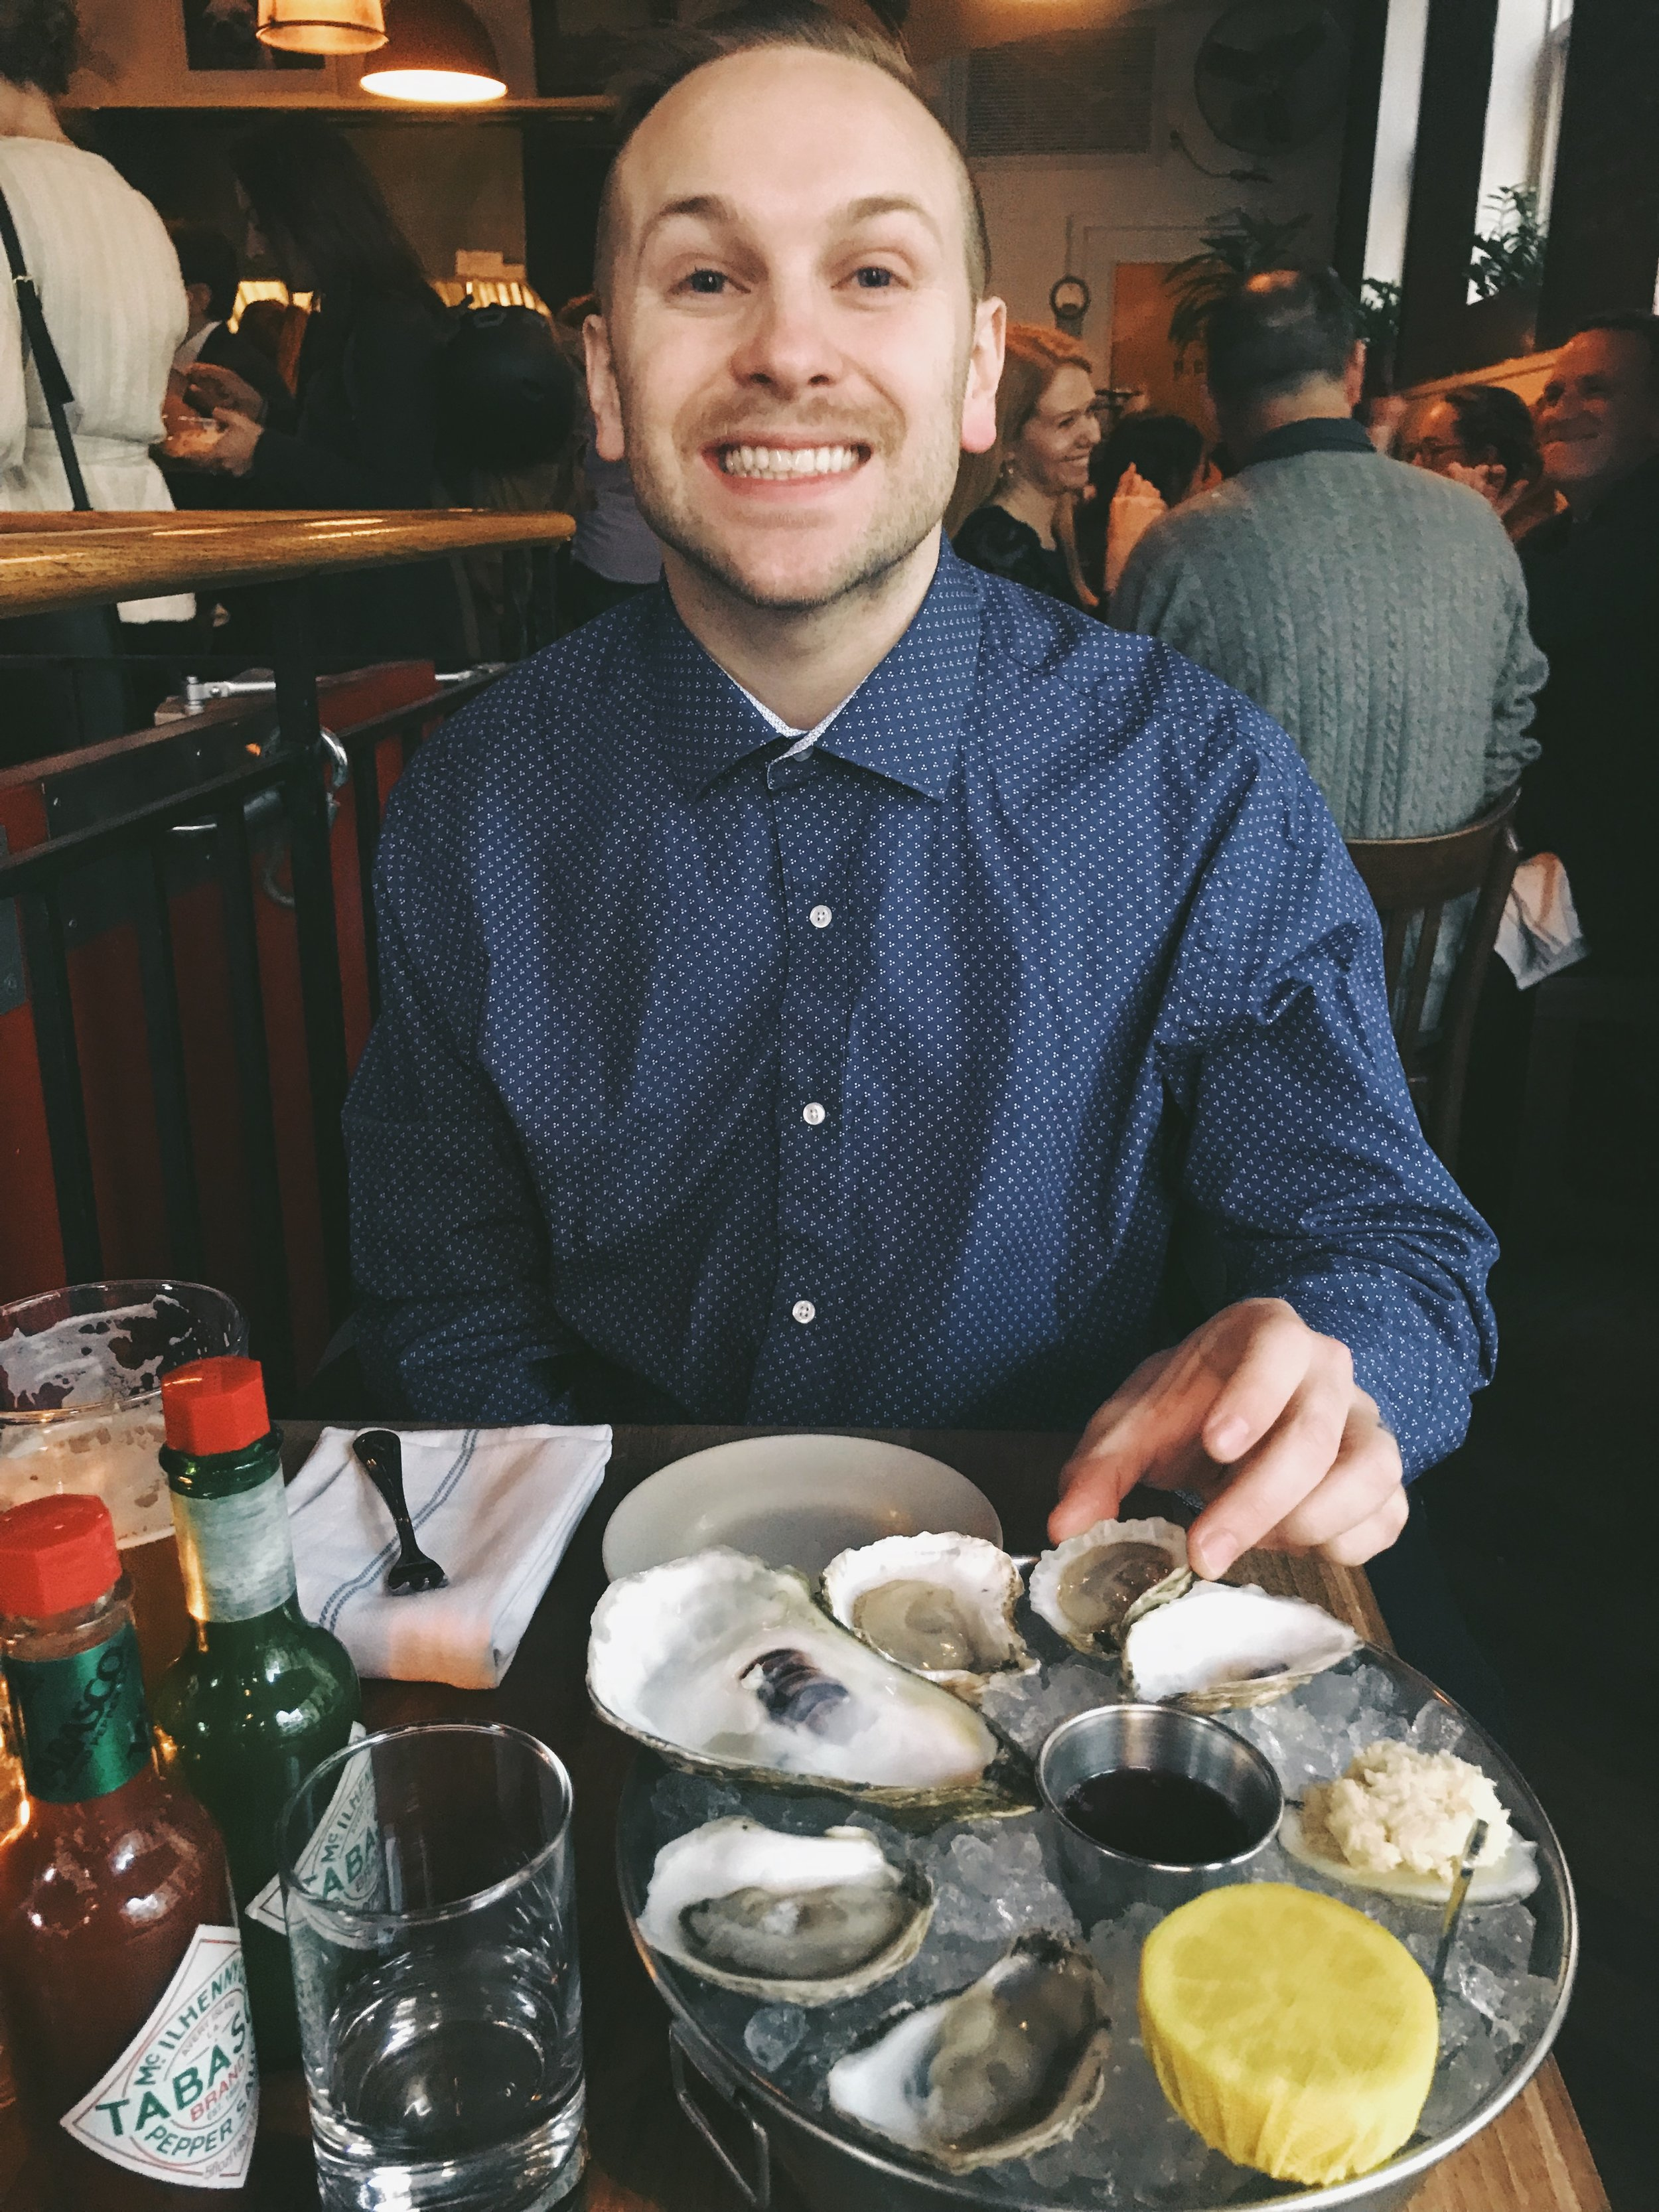 IF YOU CAN'T ALREADY TELL, I ALSO LOVE OYSTERS AND BEER!!!